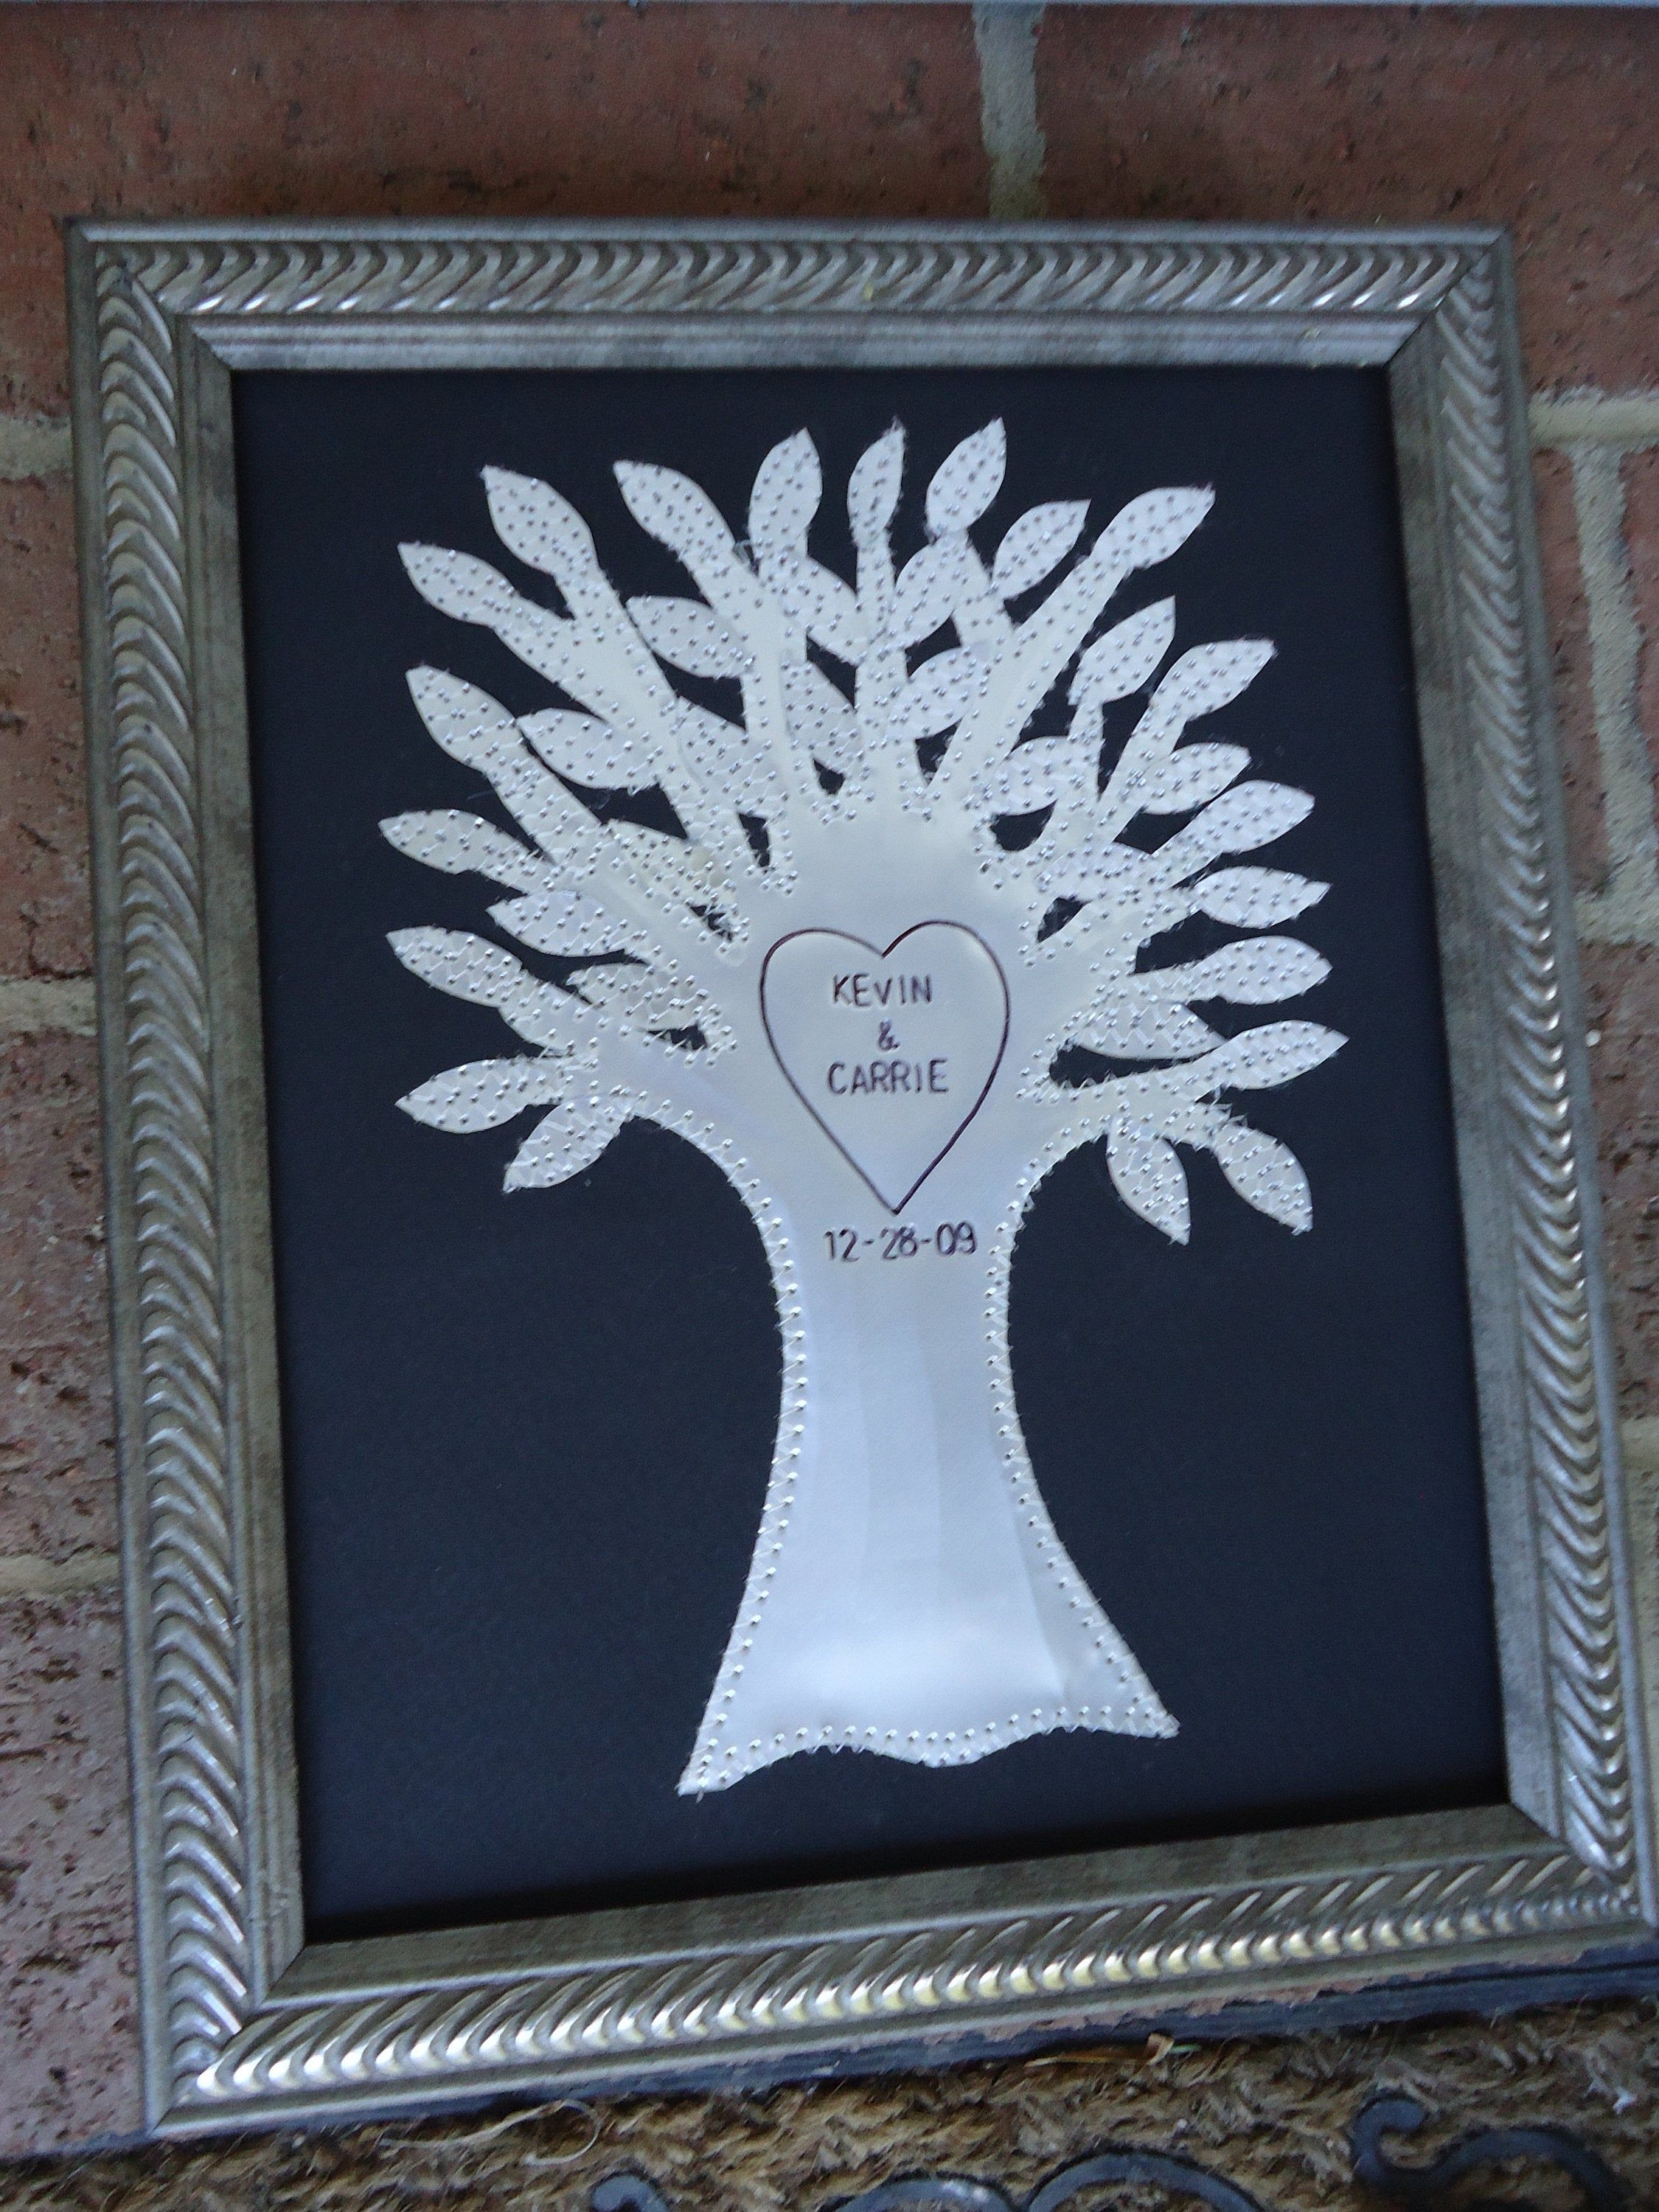 10 Year Anniversary Tin Anniversary Gift Tree Of Life Wedding Gift Family Tree Anniversary Gift Personalized Names And Wedding Date Tin Anniversary Gifts Anniversary Gifts Tin Anniversary